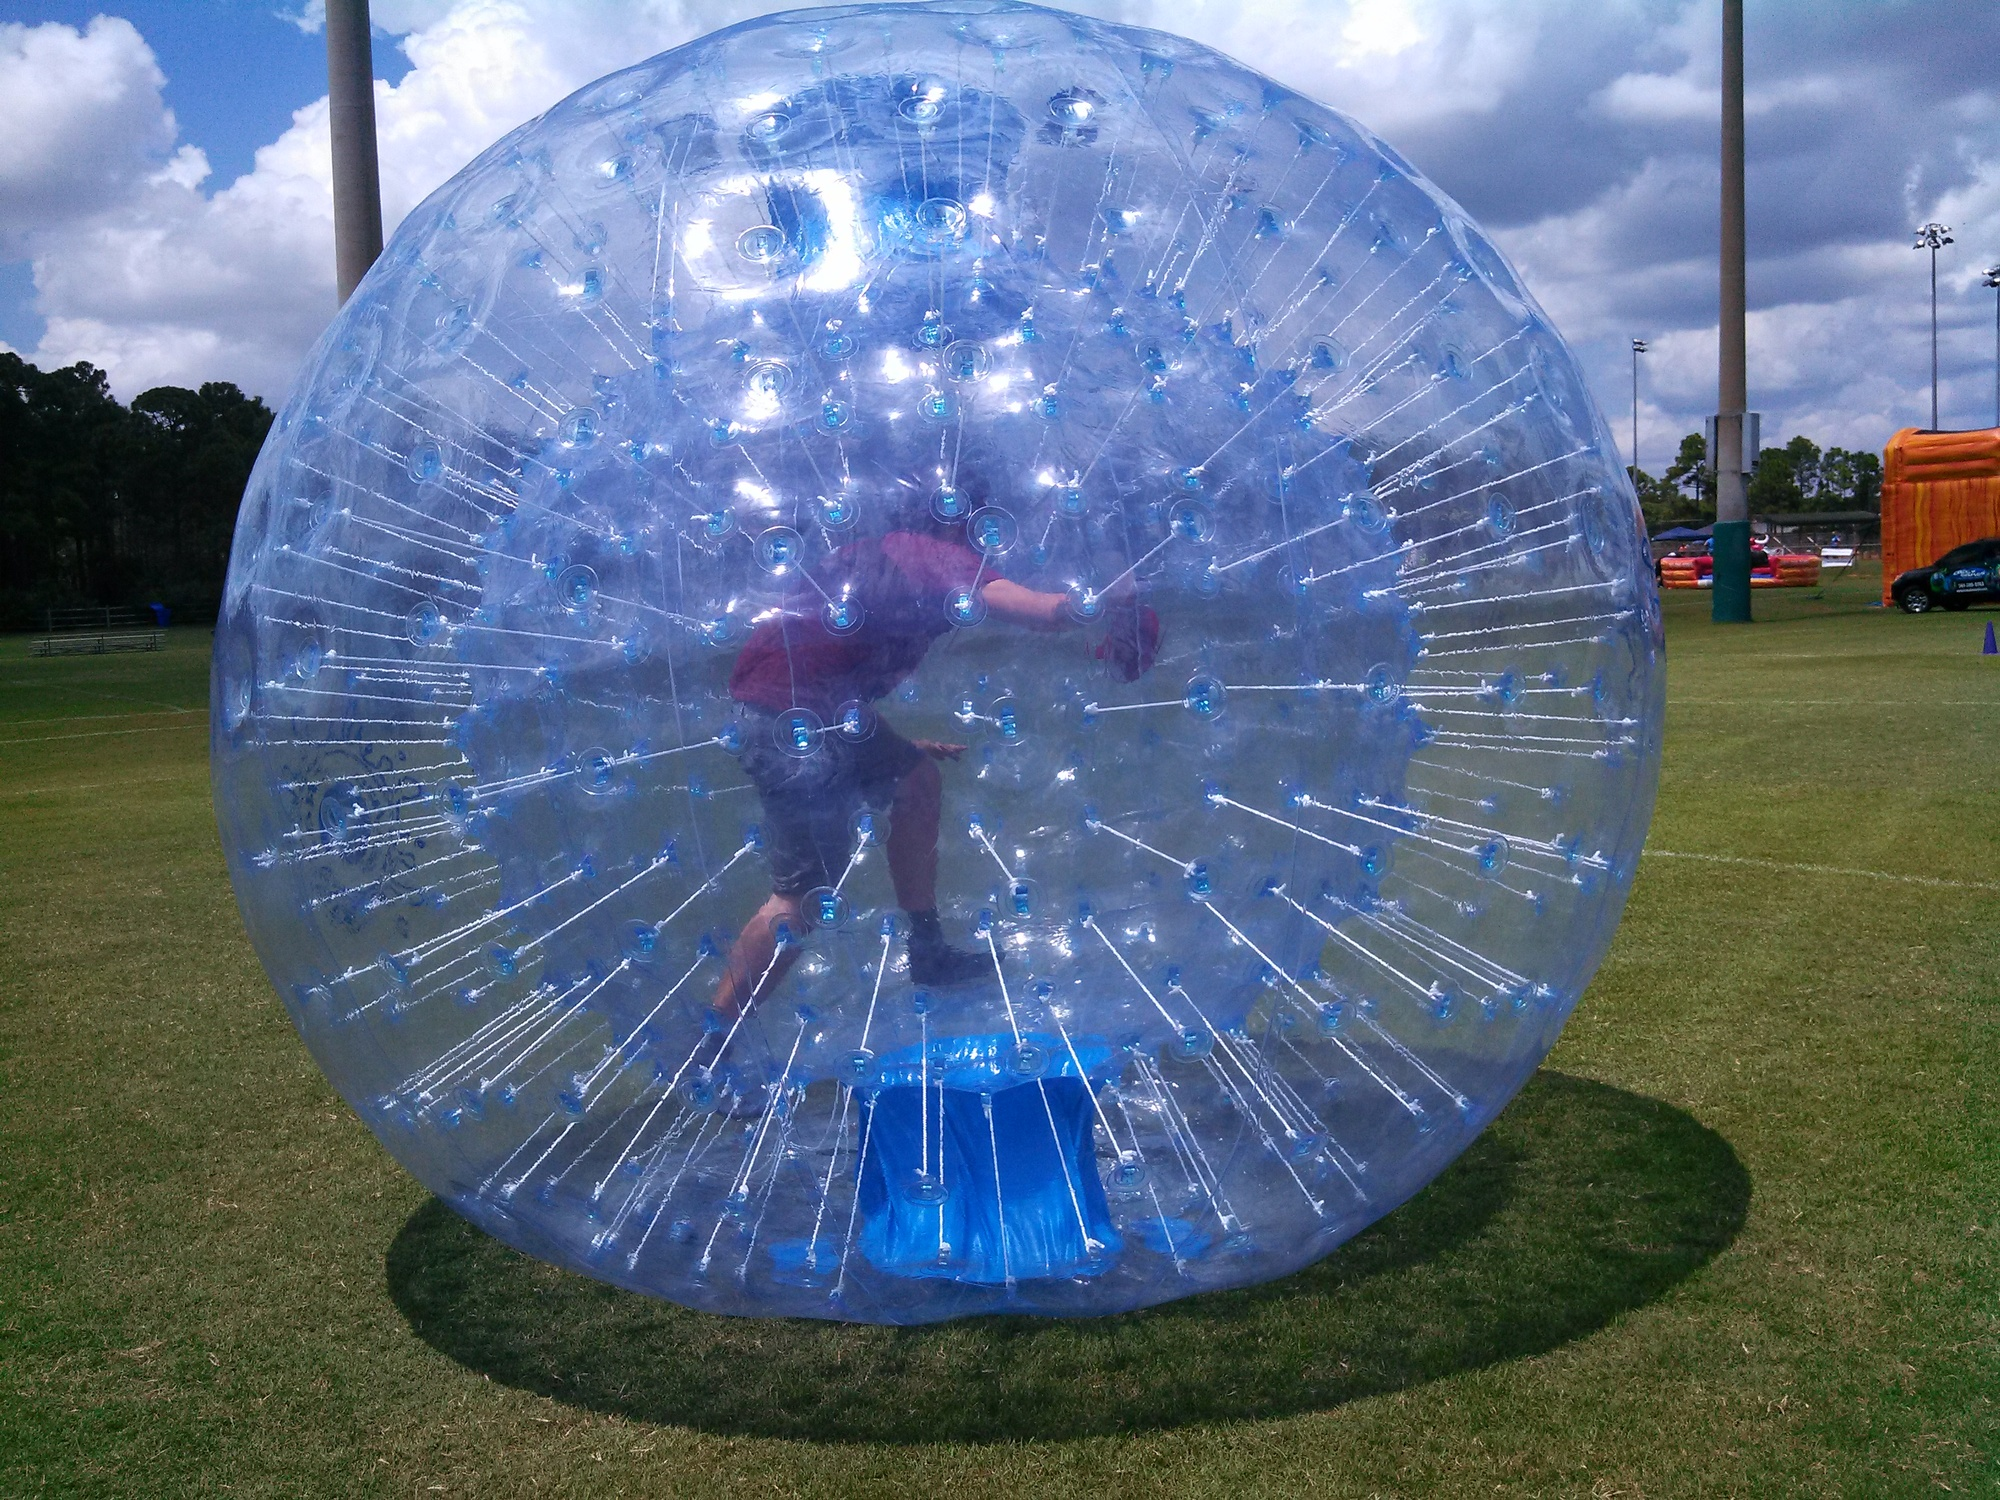 Crazy games hamster ball6